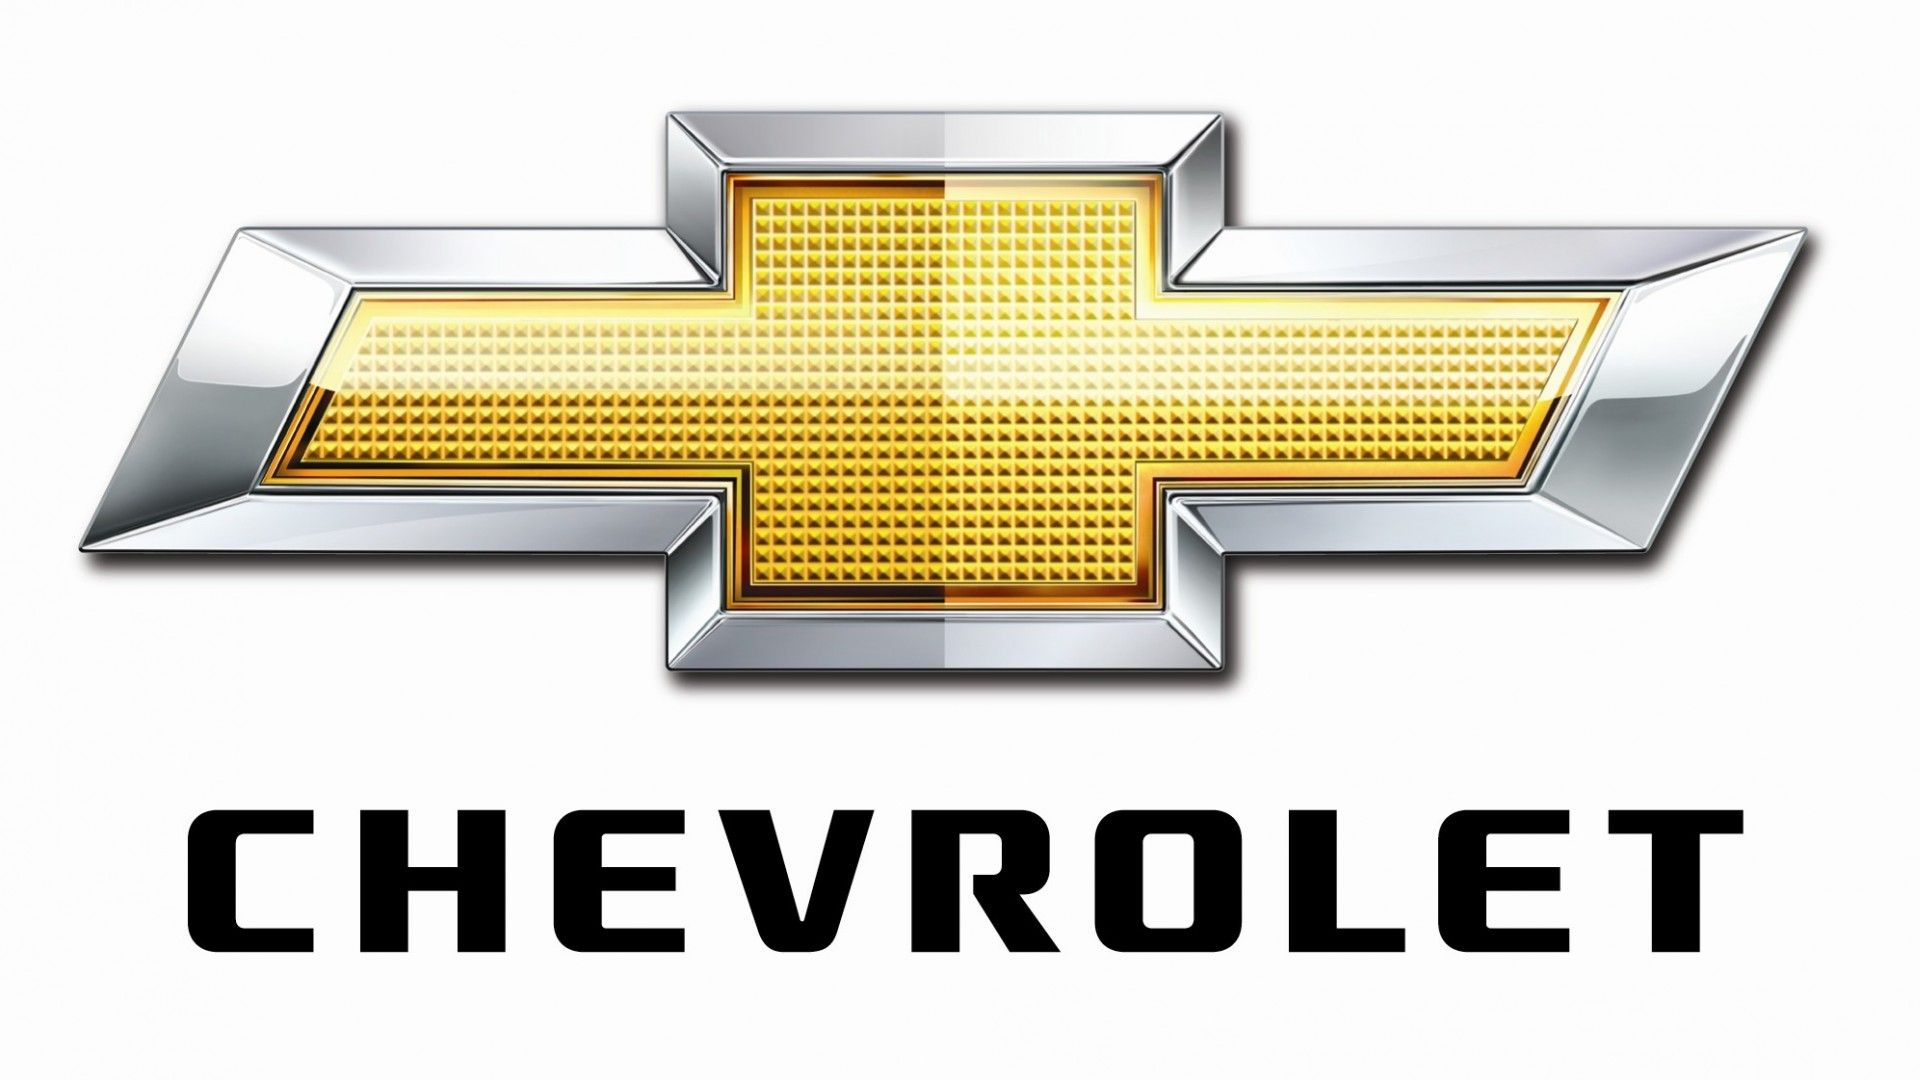 chevrolet logo vector 2015 car wallpaper hd galleryautomo chevy rh pinterest com chevy logo vector art logo chevrolet vectoriel